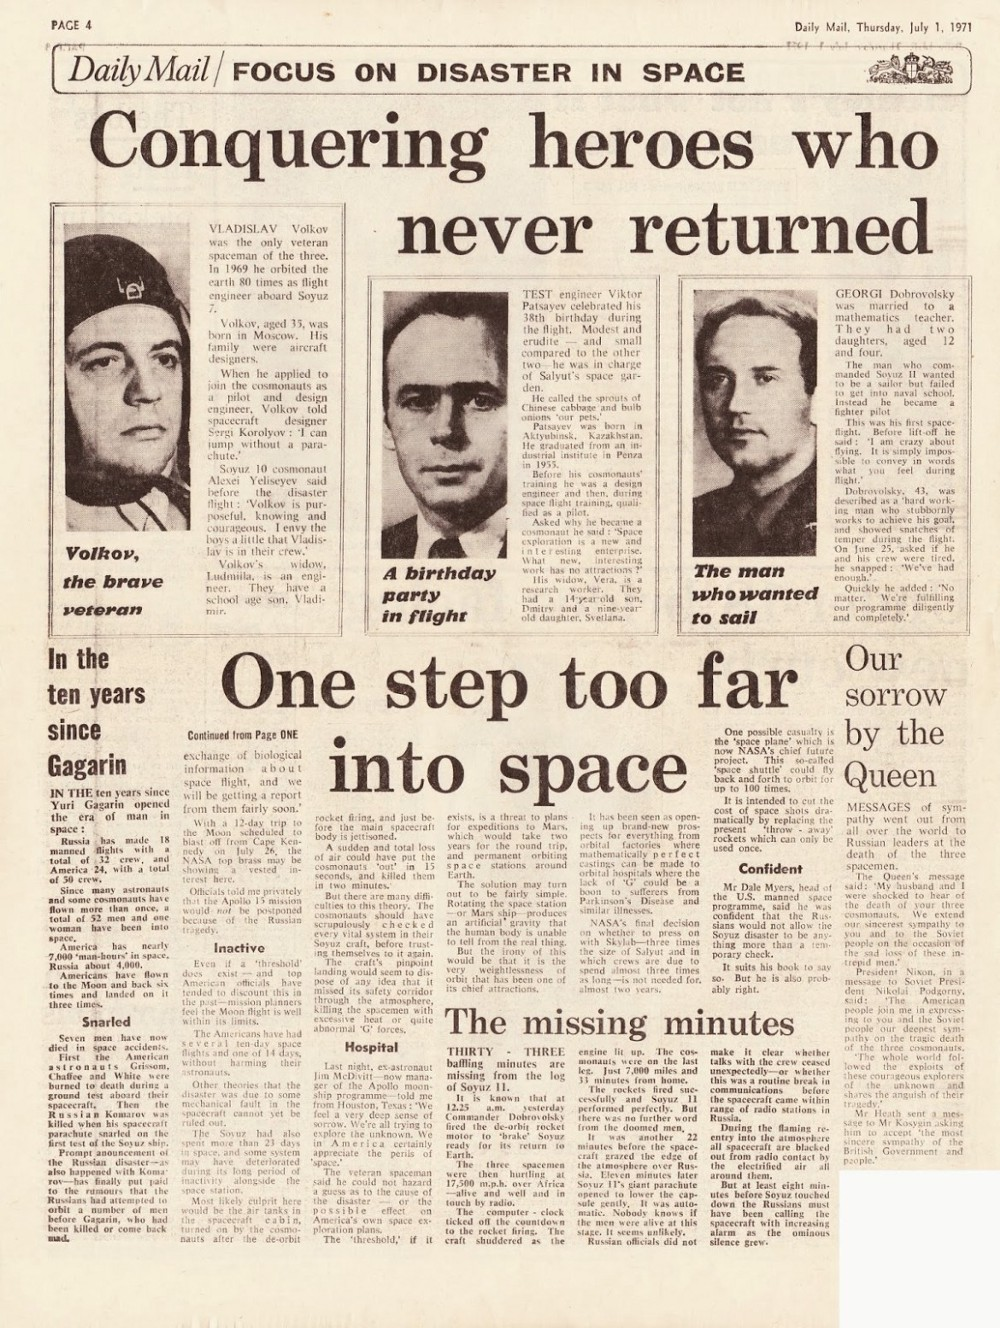 """A newspaper article with the headline """"Conquering heroes who never returned. One step too far into space."""""""